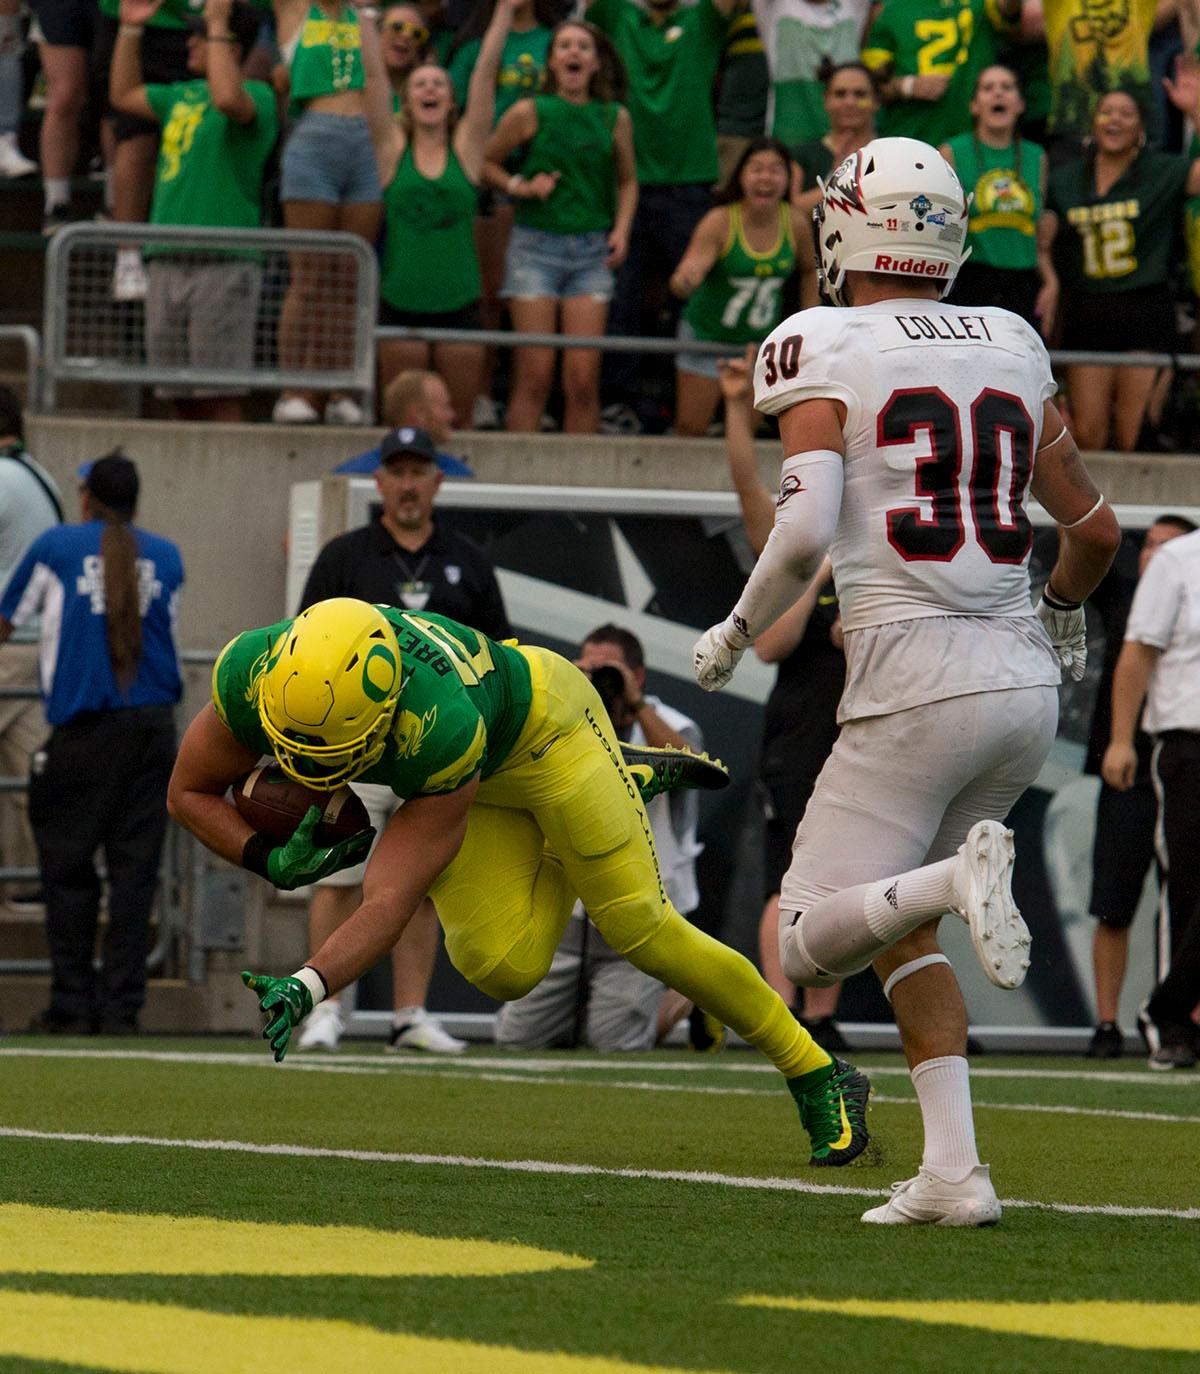 Oregon tight end Jacob Breeland (#27) dives for a touch down. The Oregon Ducks lead the Southern Utah Thunderbirds 42 to 21 at the end of the first half of the Ducks' 2017 season opener. Photo by Ben Lonergan, Oregon News Lab